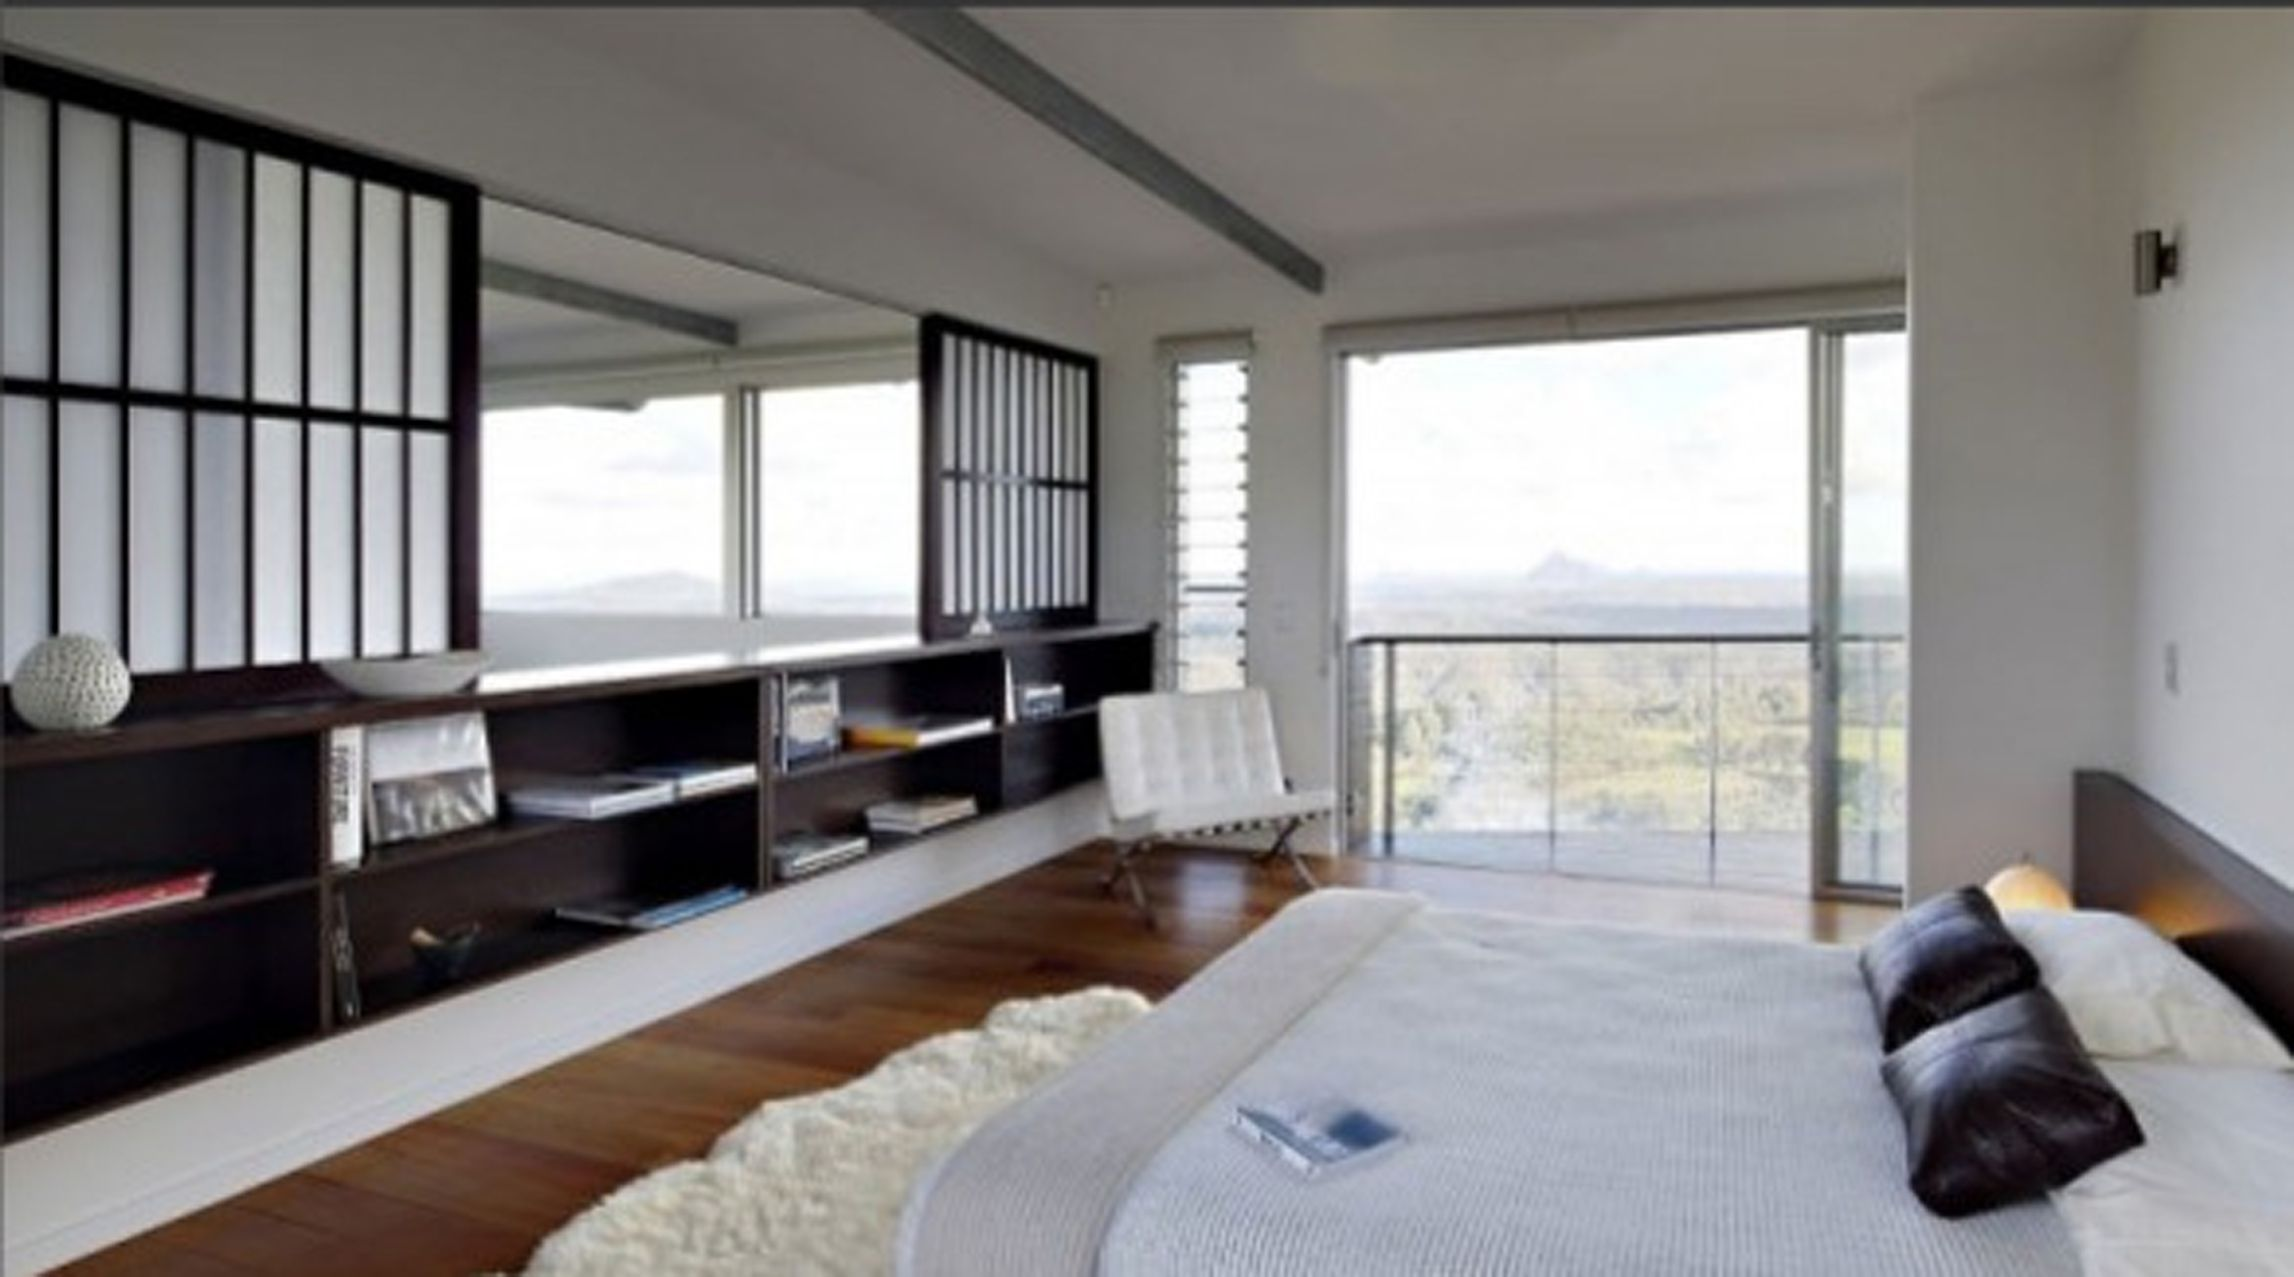 Loft bedroom design ideas  loft bedroom design ideas designing ideas for bedrooms master